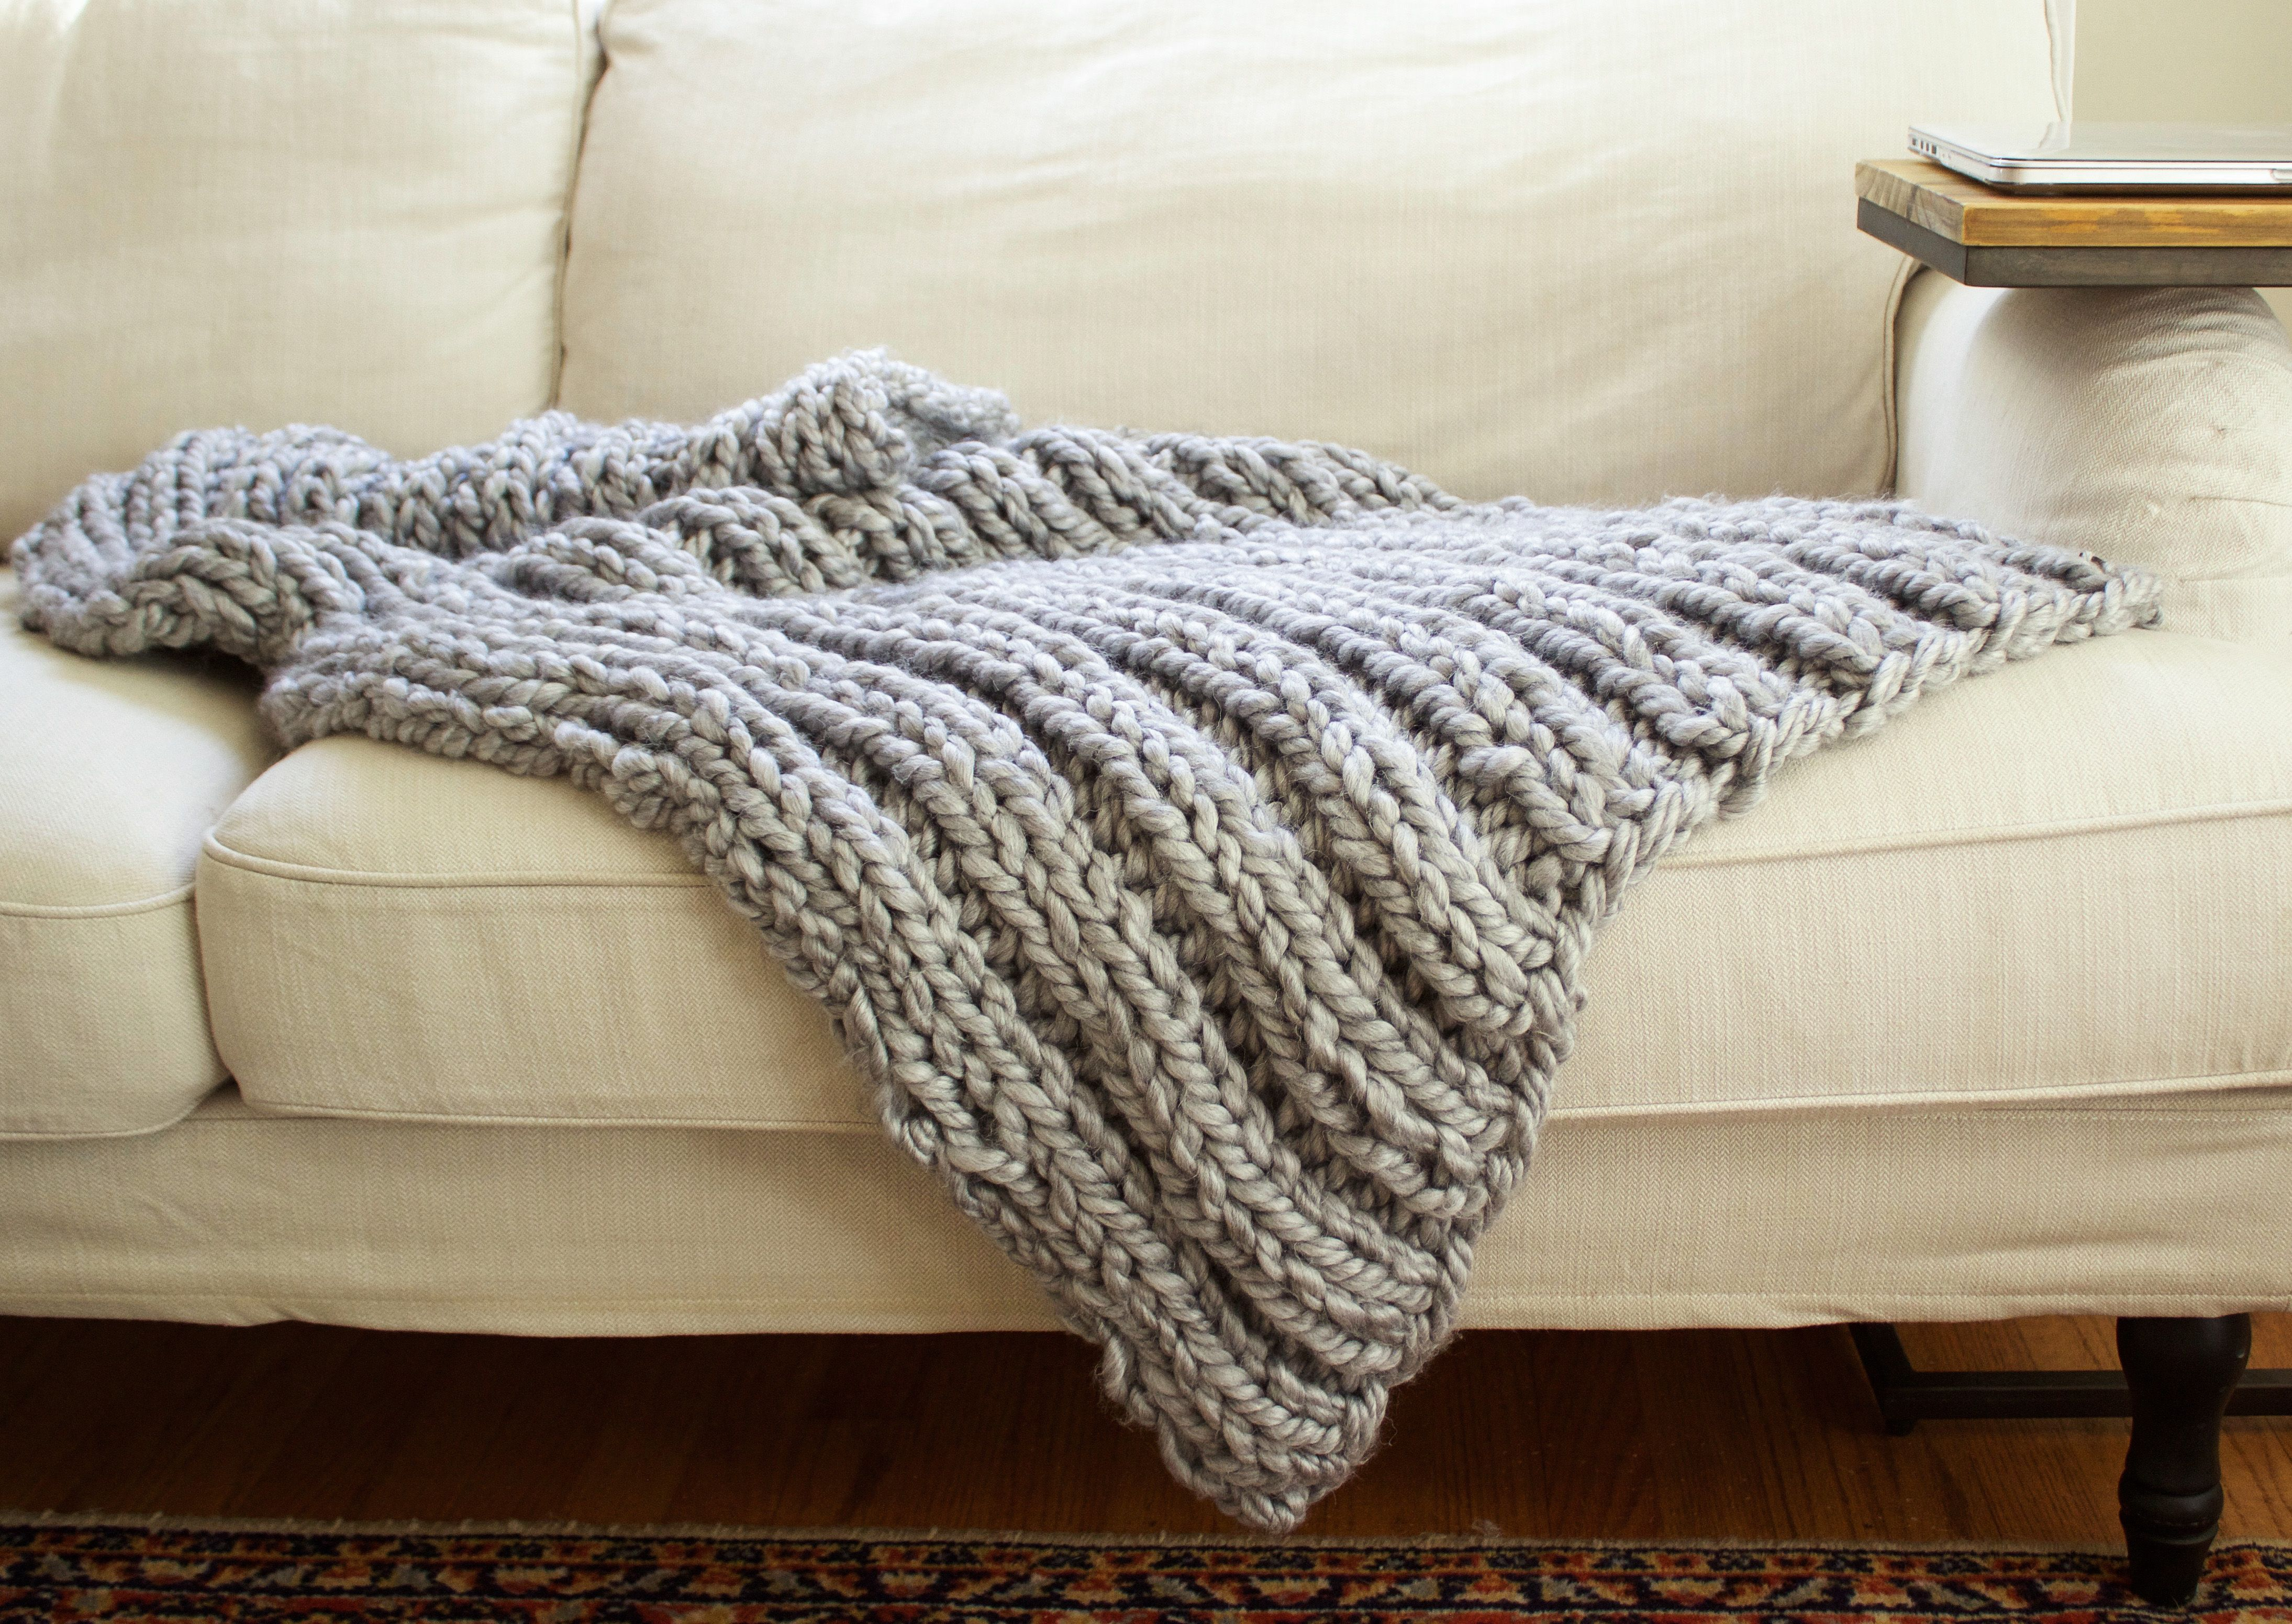 Chunky rib stitch knit blanket pattern patterns pinterest chunky rib stitch knit blanket pattern bankloansurffo Image collections